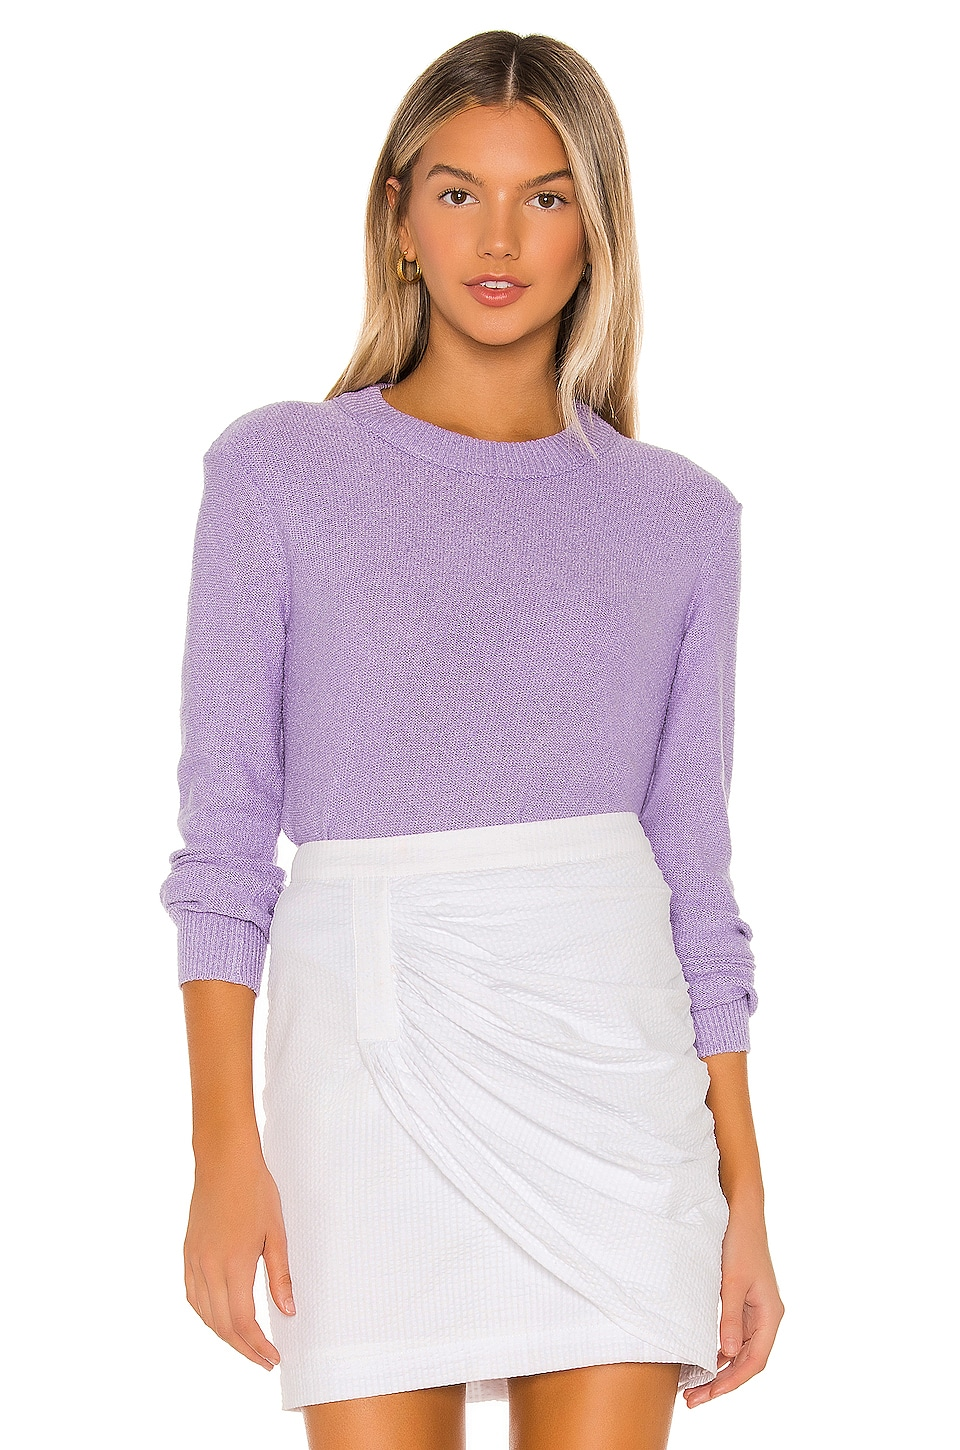 MAJORELLE Avianna Sweater in Light Purple